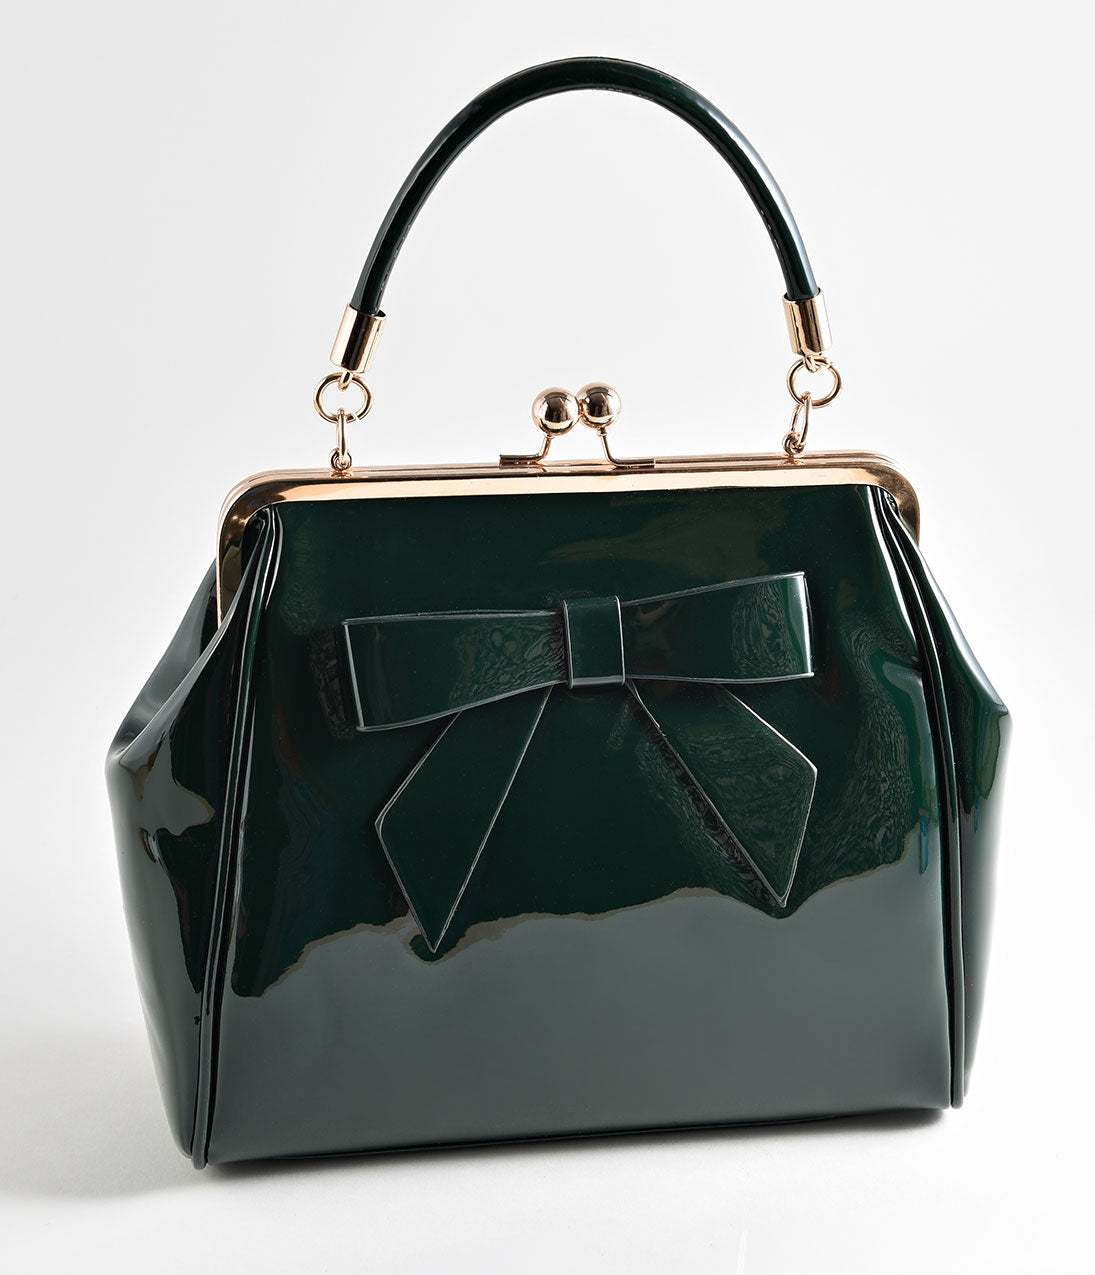 Vintage & Retro Handbags, Purses, Wallets, Bags Banned Emerald Green Patent Leatherette Top Frame Handbag $66.00 AT vintagedancer.com